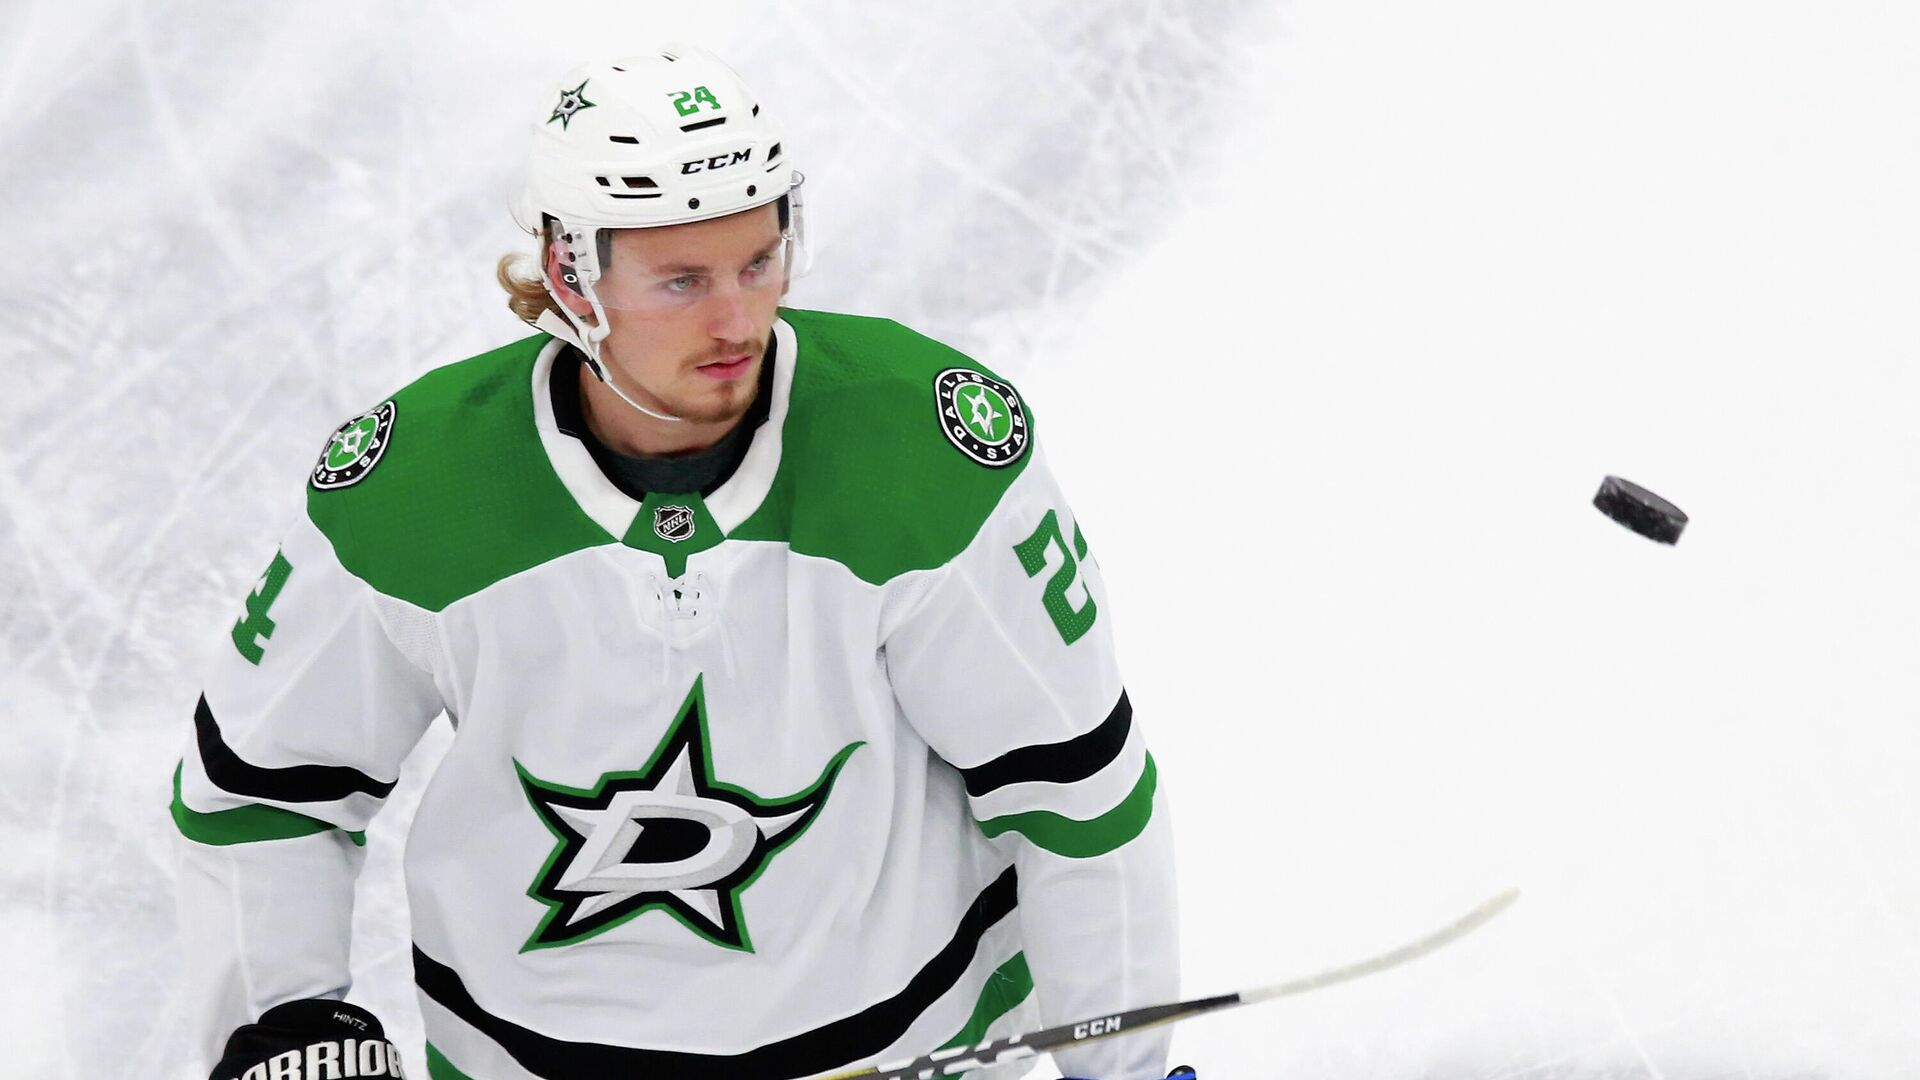 EDMONTON, ALBERTA - AUGUST 20: Roope Hintz #24 of the Dallas Stars skates in warm-ups prior to the game against the Calgary Flames in Game Six of the Western Conference First Round during the 2020 NHL Stanley Cup Playoffs at Rogers Place on August 20, 2020 in Edmonton, Alberta, Canada.   Jeff Vinnick/Getty Images/AFP - РИА Новости, 1920, 09.11.2020